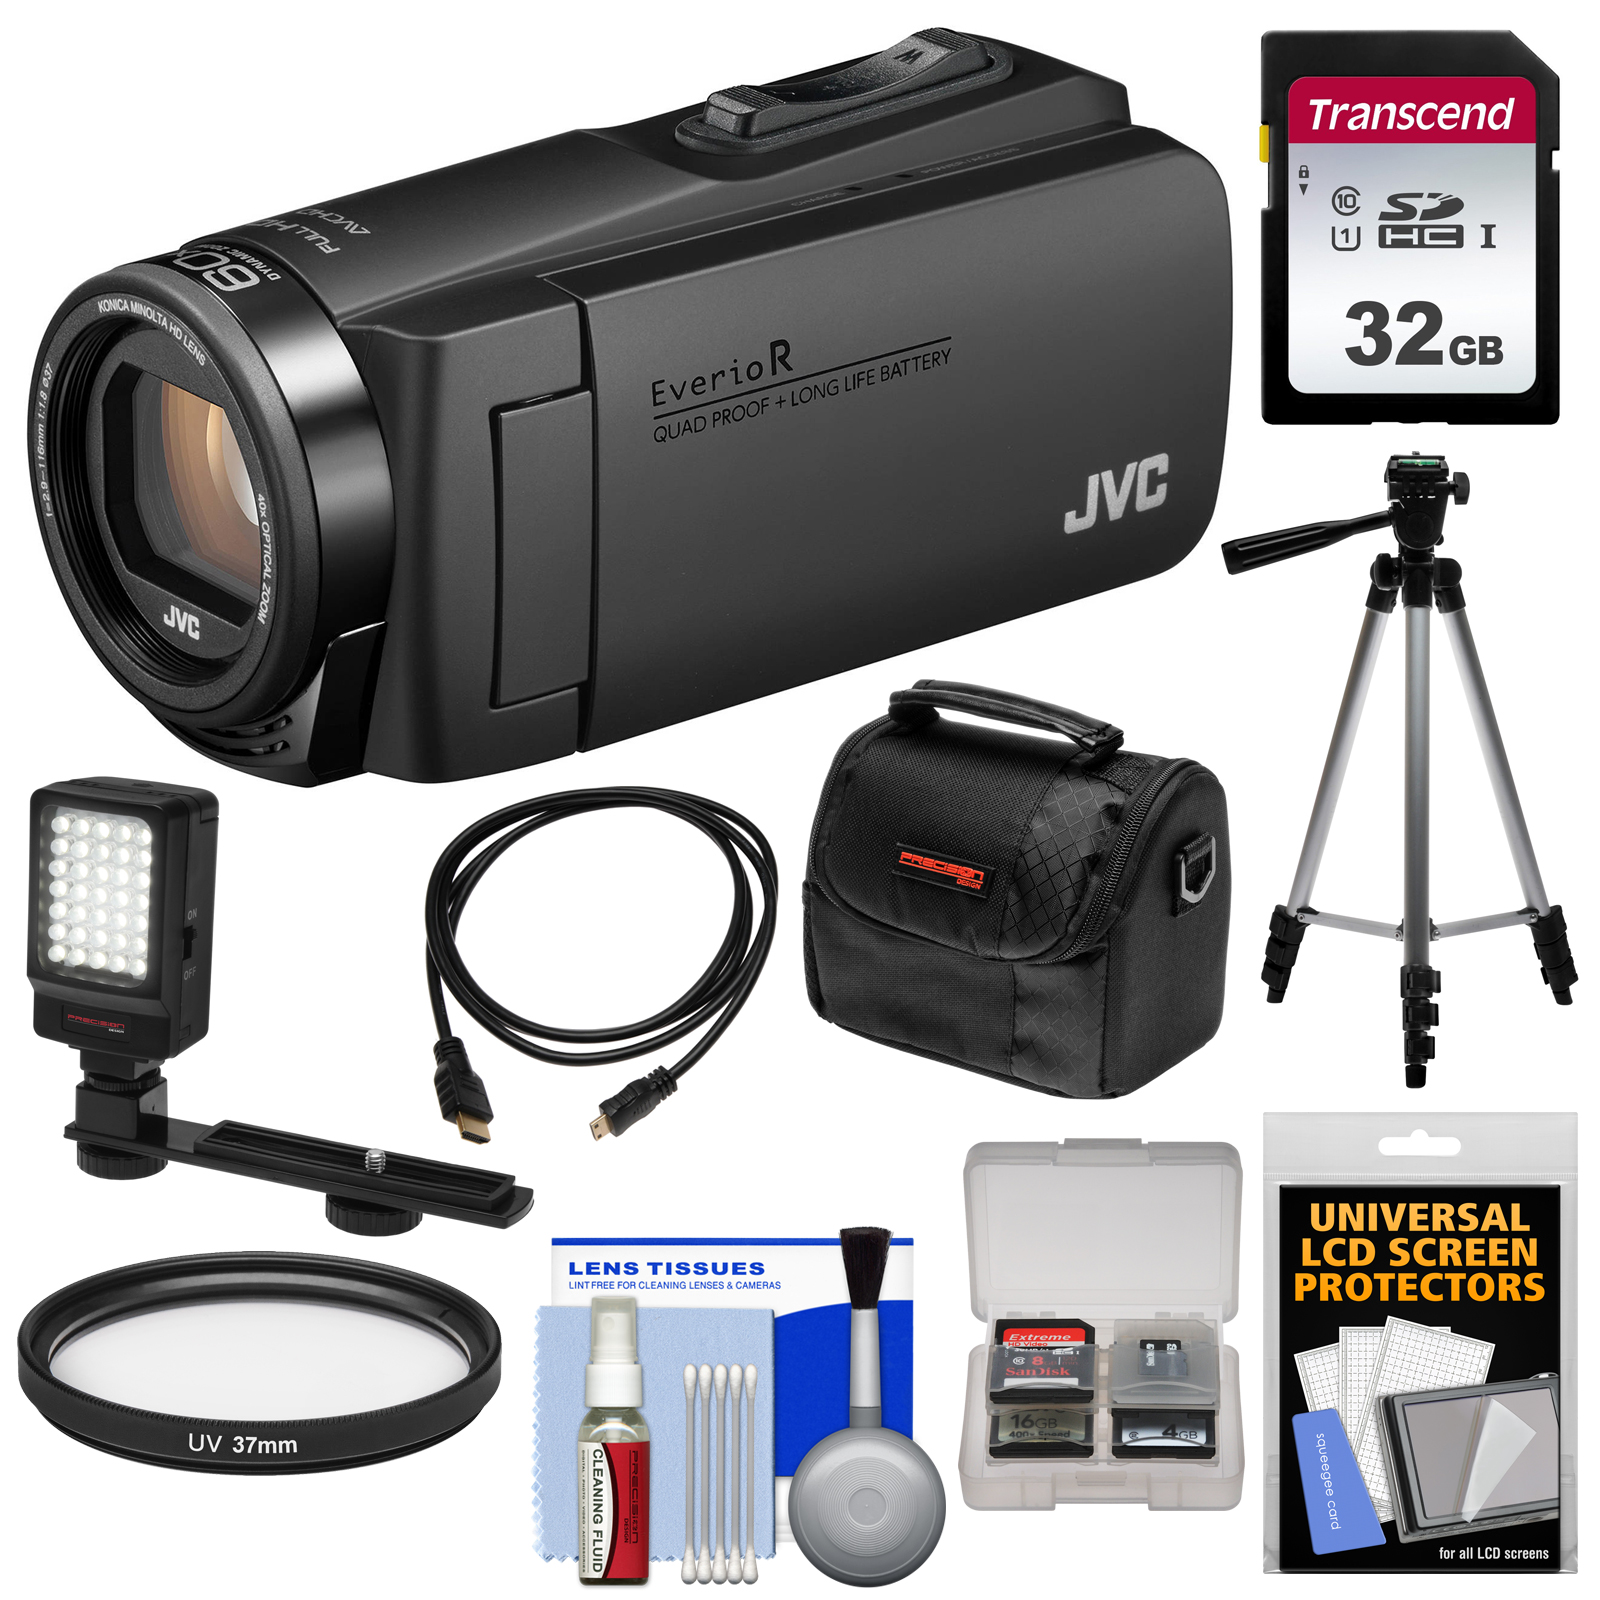 JVC Everio GZ-R460 Quad Proof 1080p HD Video Camera Camcorder (Black) with 32GB Card + LED Light + Tripod + Case + Kit